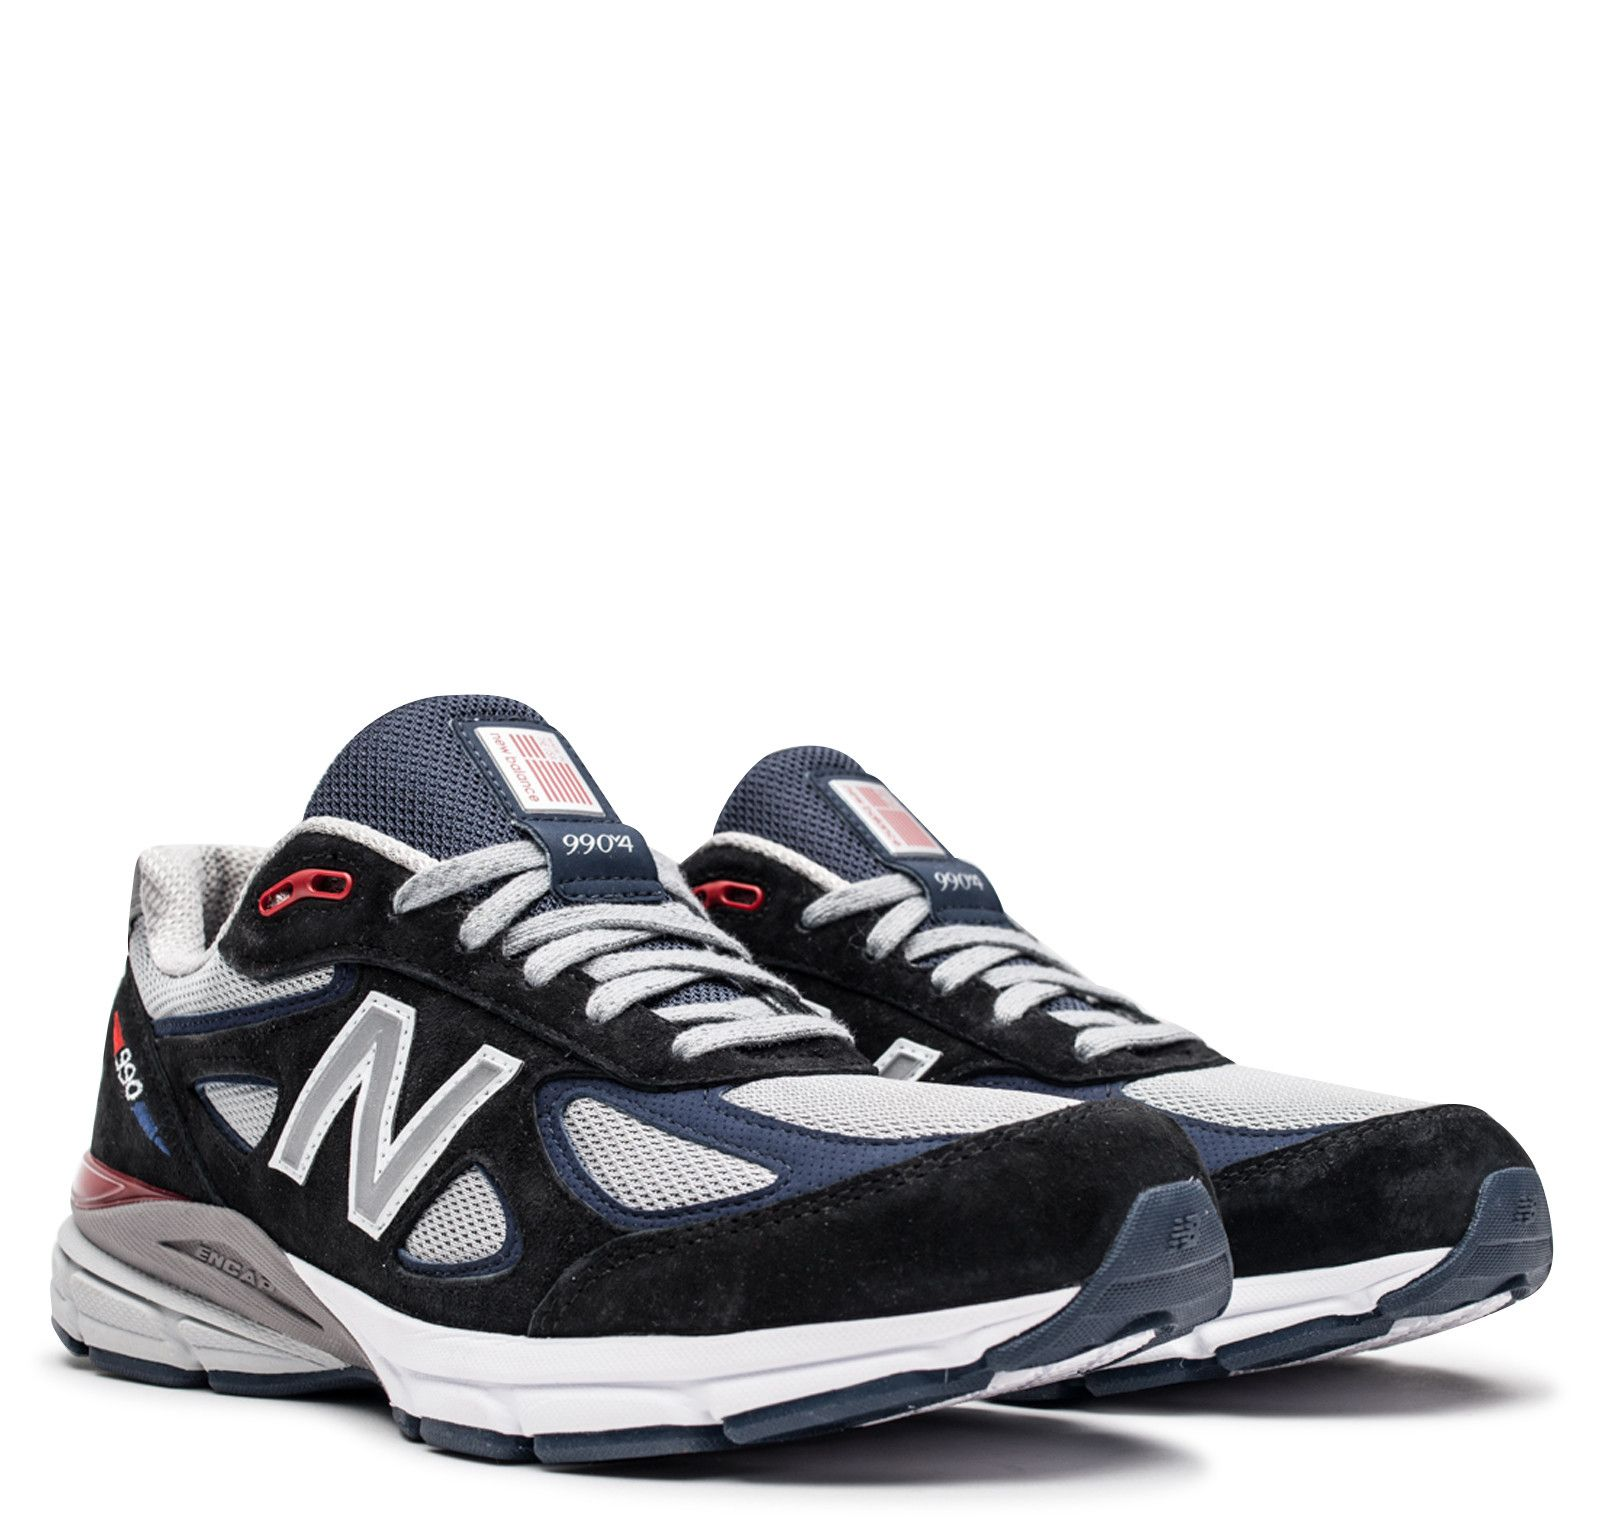 new product 44f9f 46058 New Balance 990 | DTLR.com | Footwear | New balance ...